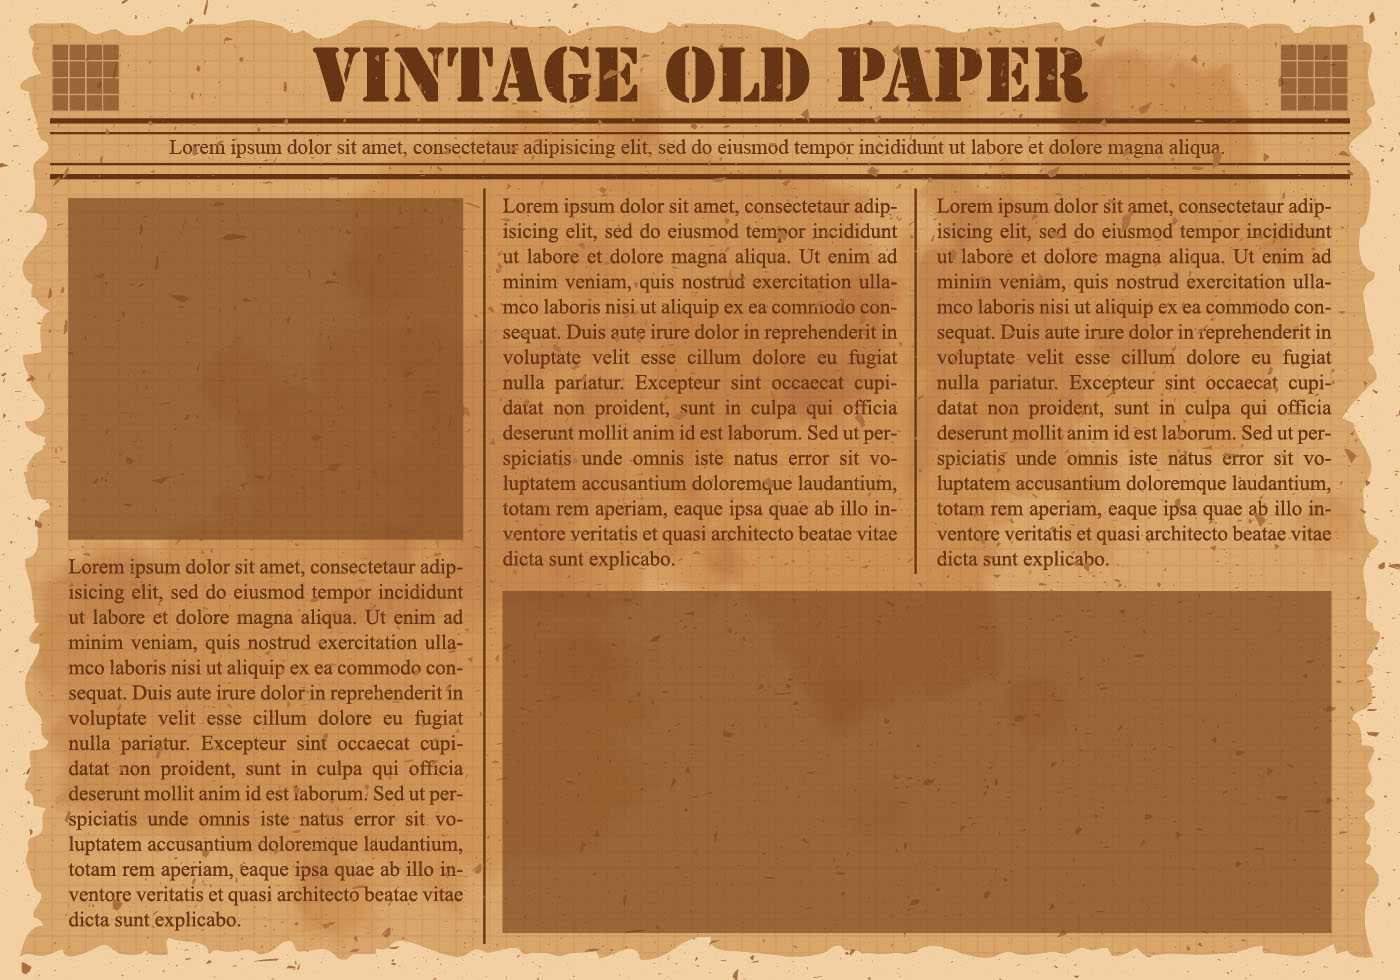 Old Vintage Newspaper - Download Free Vectors, Clipart Pertaining To Old Blank Newspaper Template